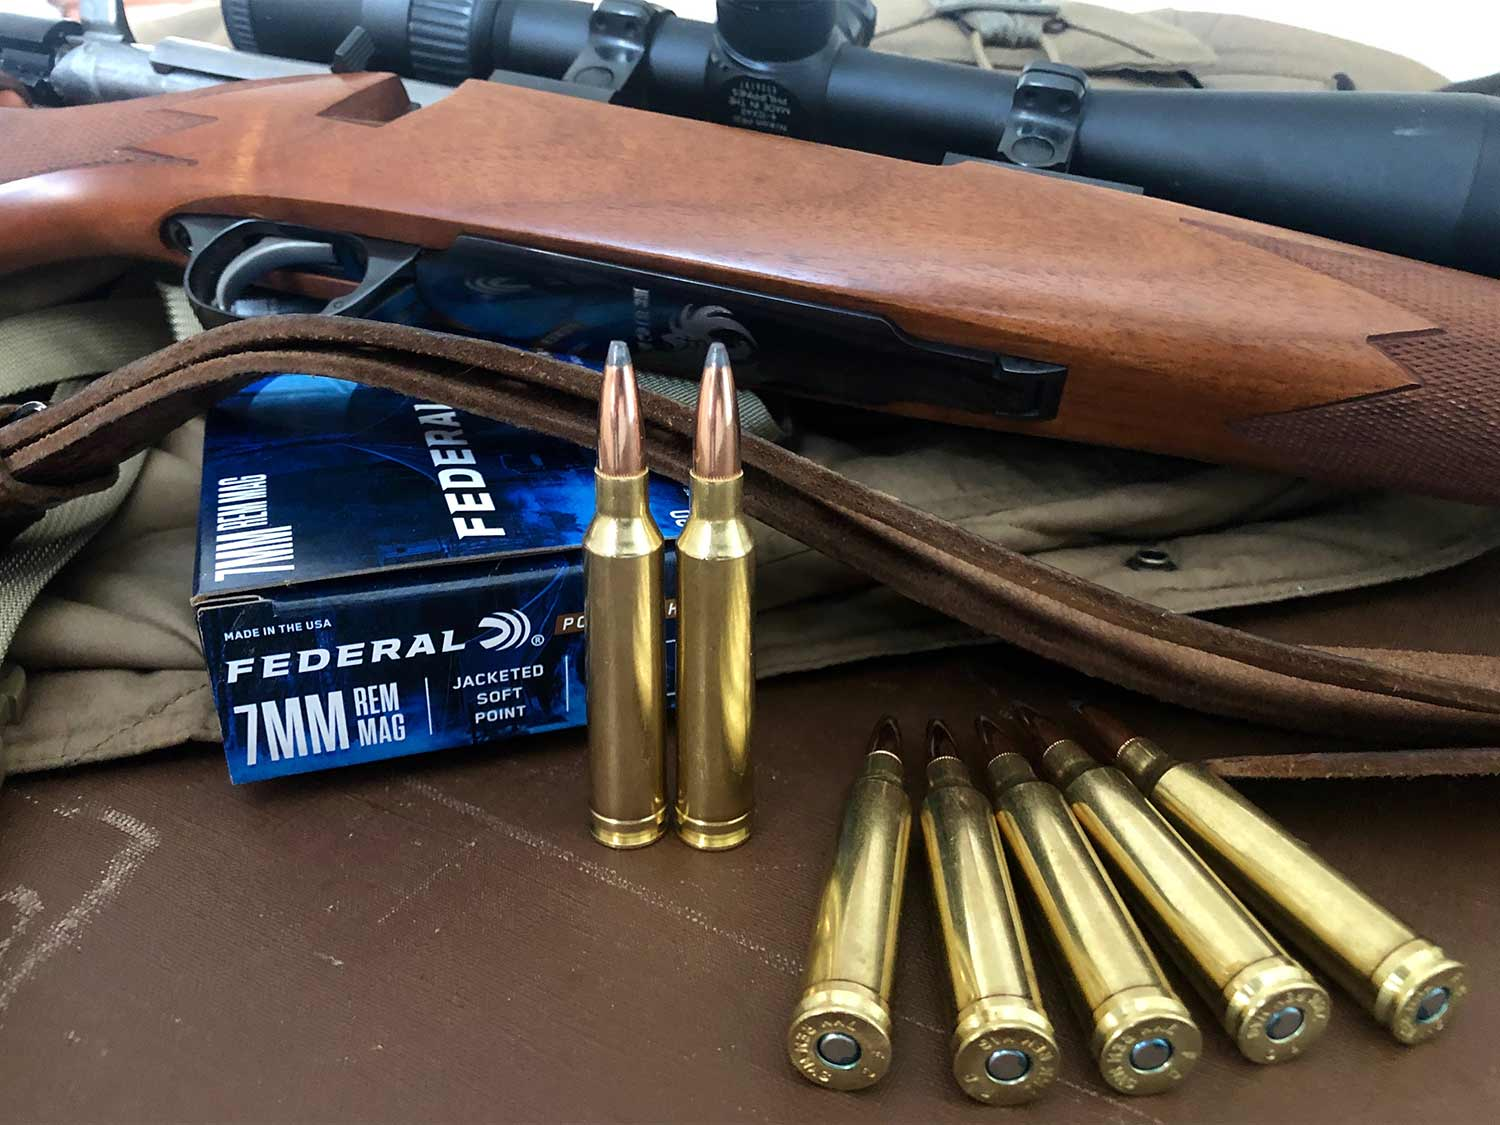 The 7mm Mag and rifle.